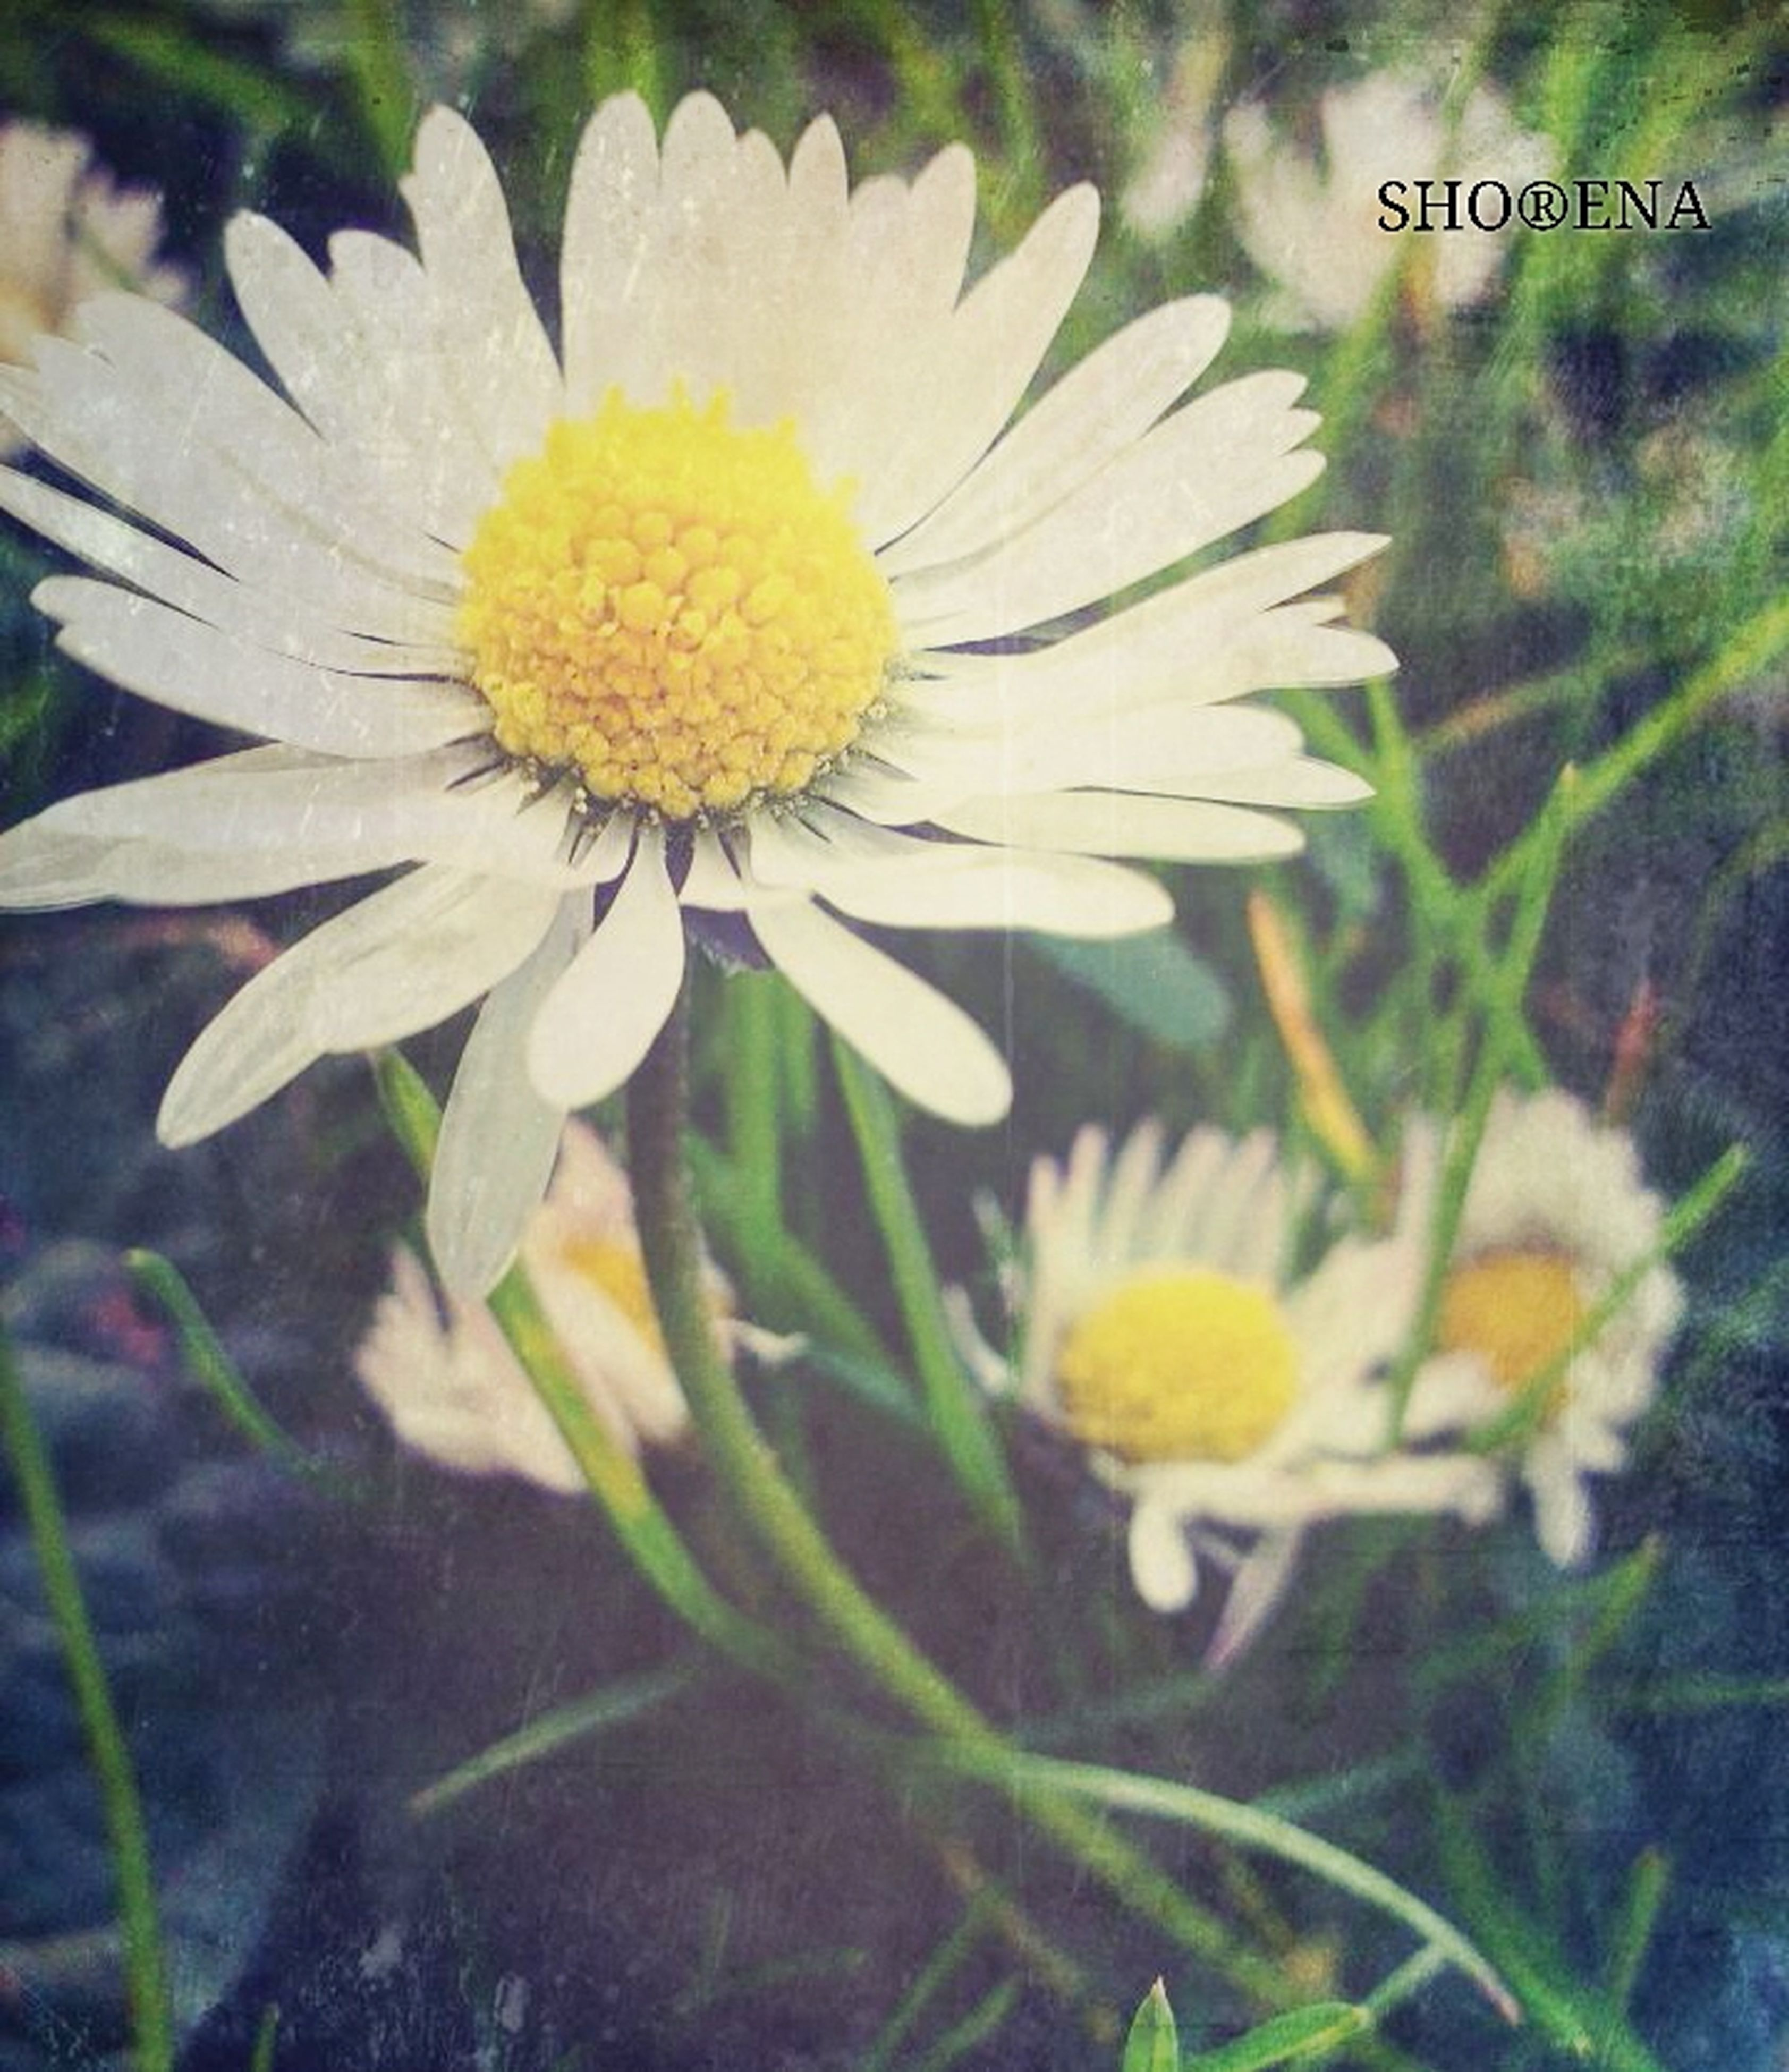 flower, freshness, fragility, petal, flower head, growth, yellow, beauty in nature, close-up, white color, blooming, daisy, nature, pollen, focus on foreground, plant, single flower, in bloom, day, outdoors